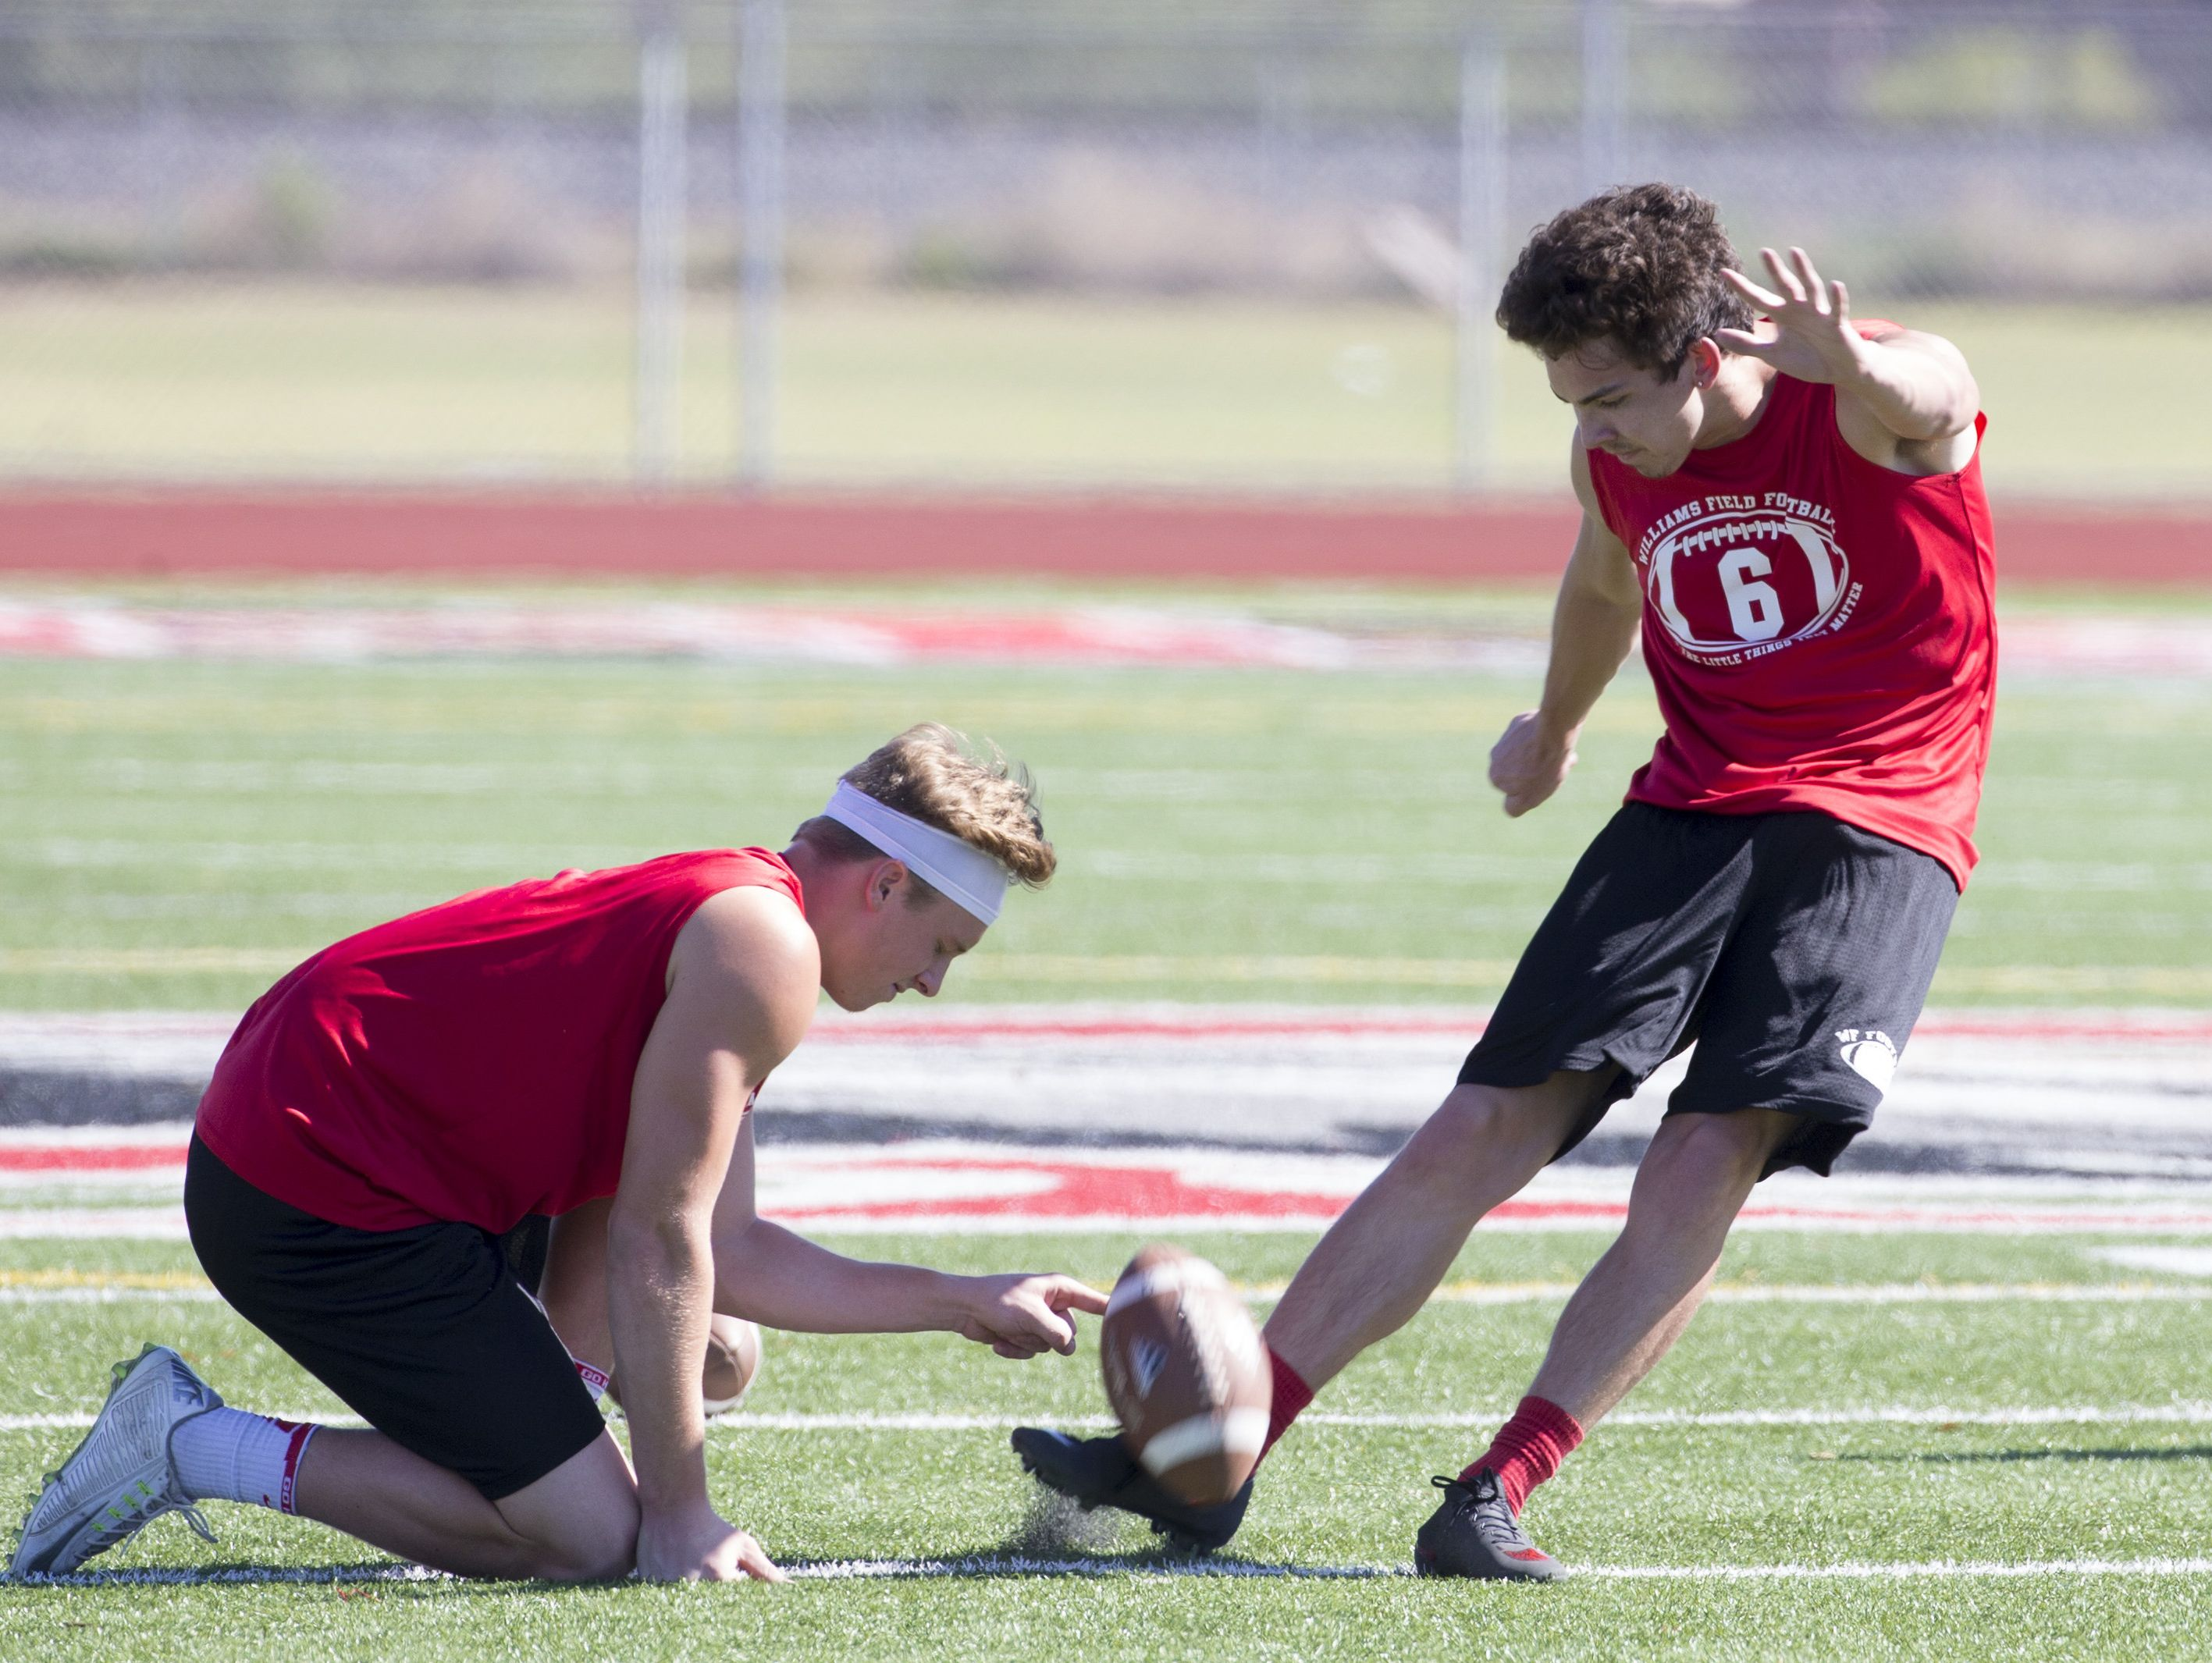 Williams Field High School kicker Brandon Ruiz works out during spring football practice in Gilbert on May 19, 2016.